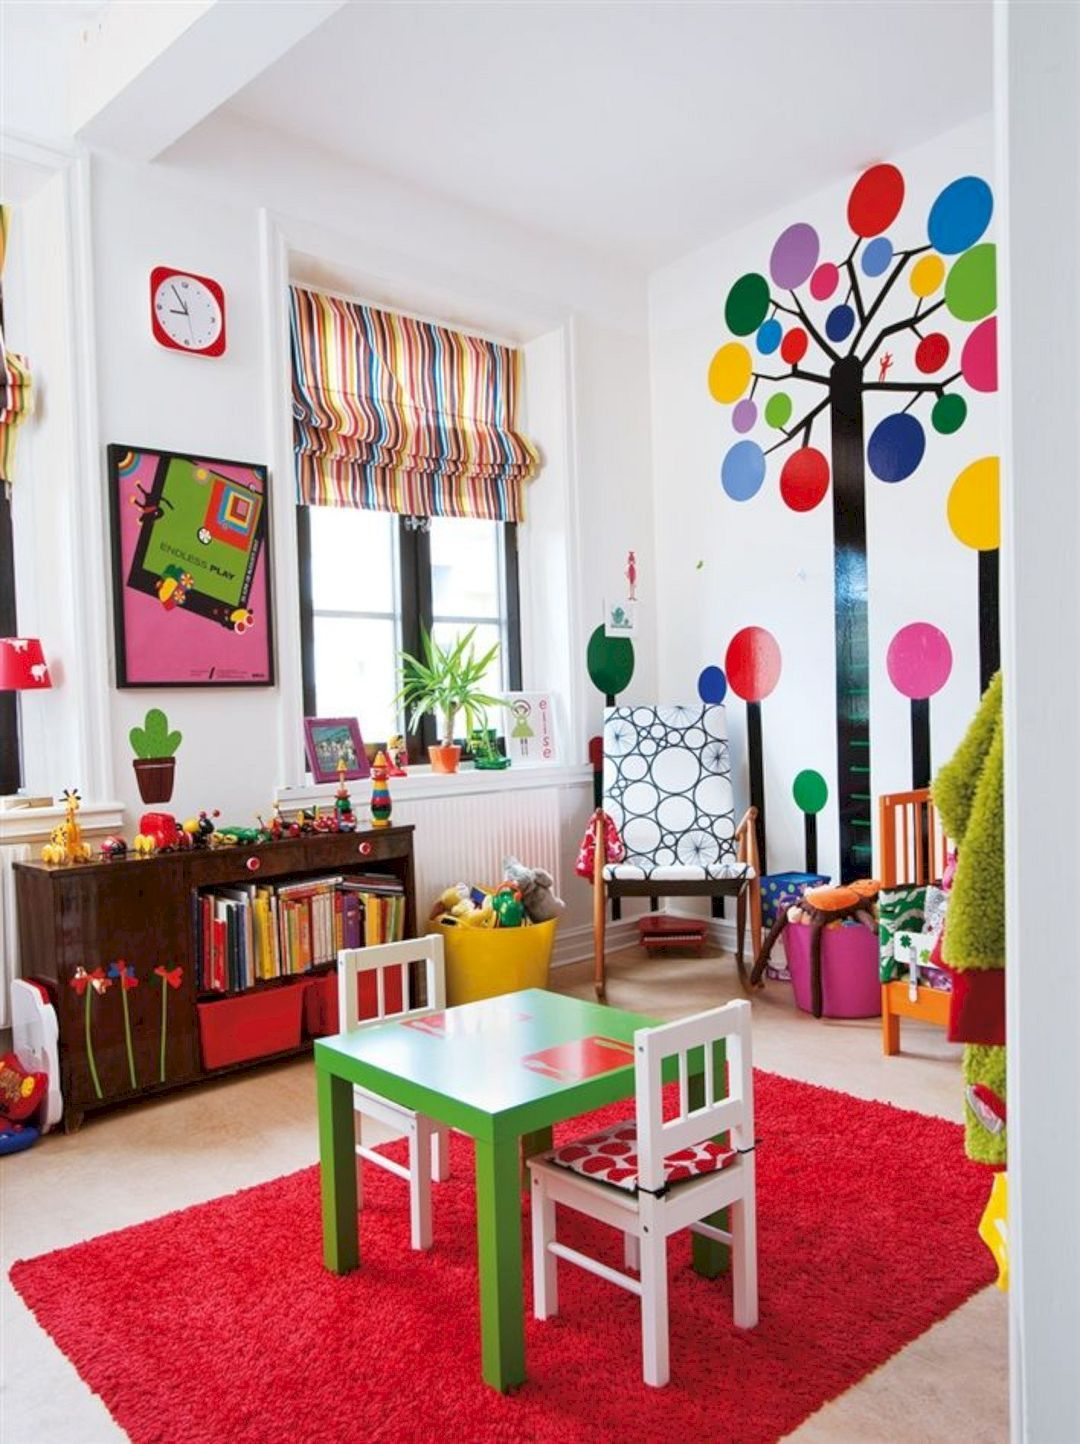 Best Kid Room Designs: Things To Consider Before Making Kids Playground Design